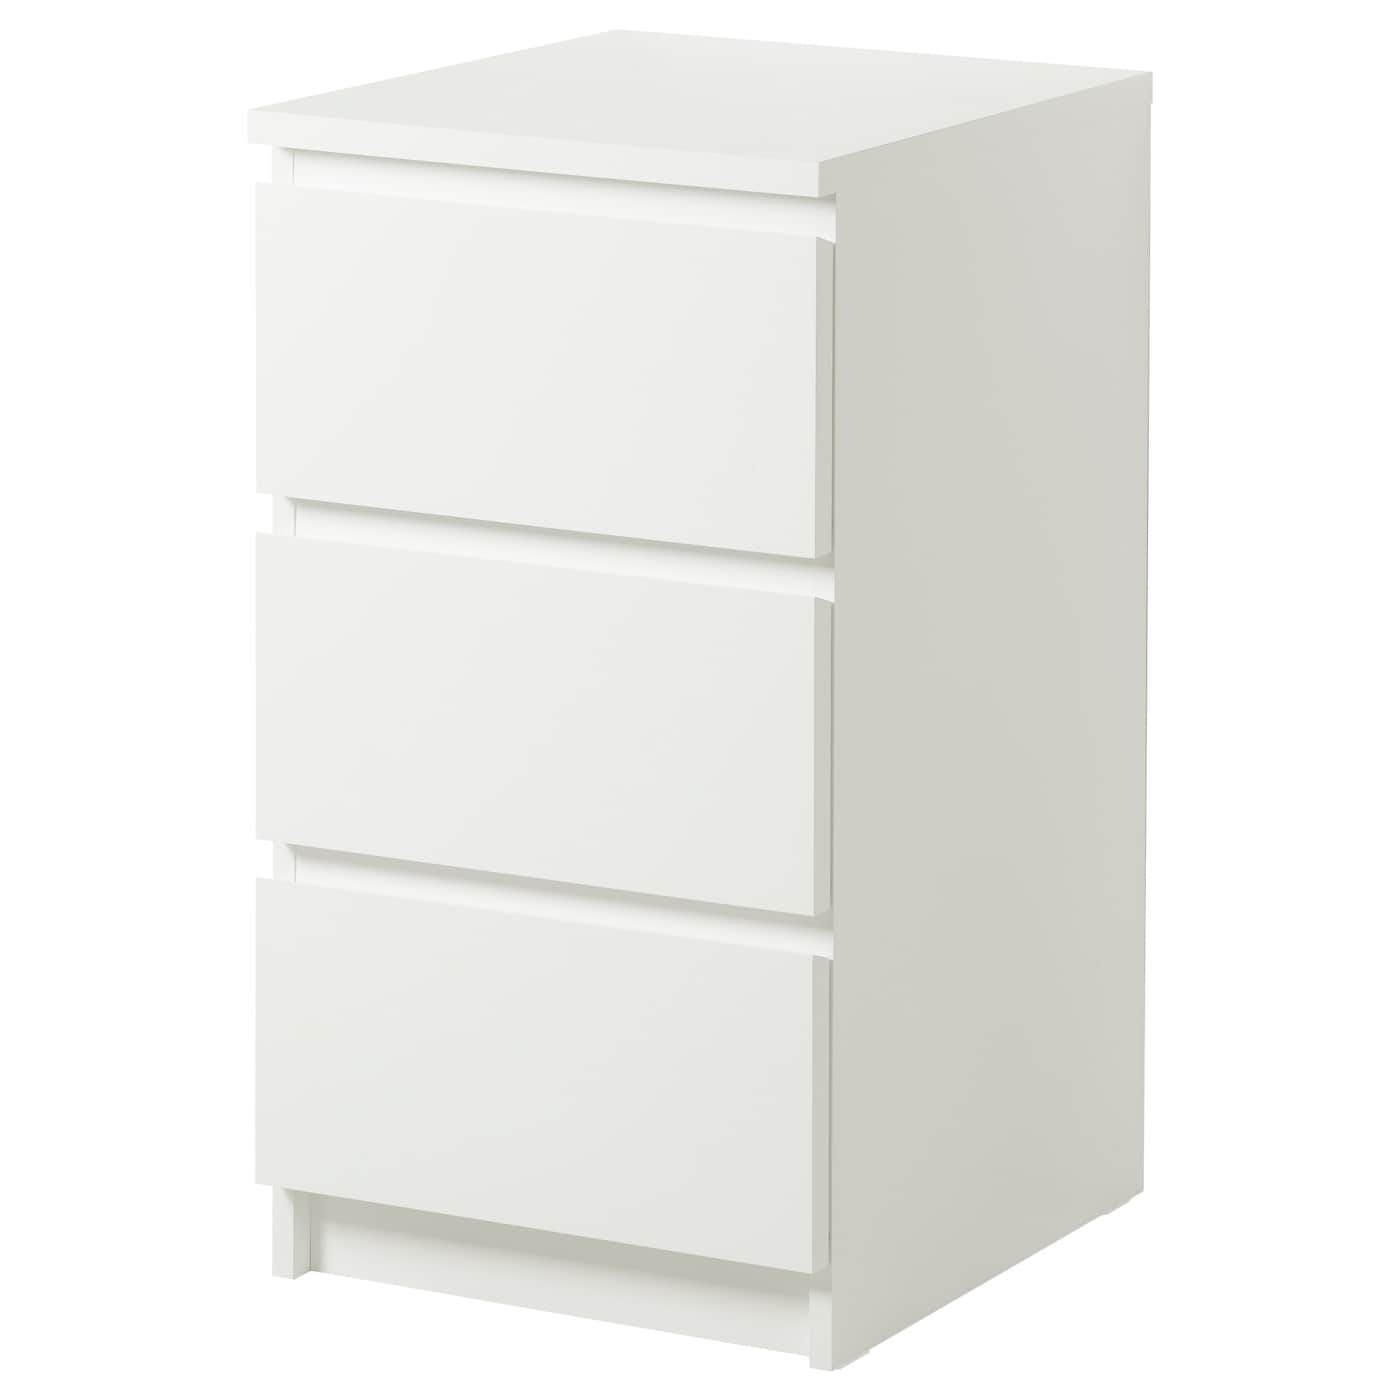 Malm chest of 3 drawers white 40x78 cm ikea for Schrank 60x40